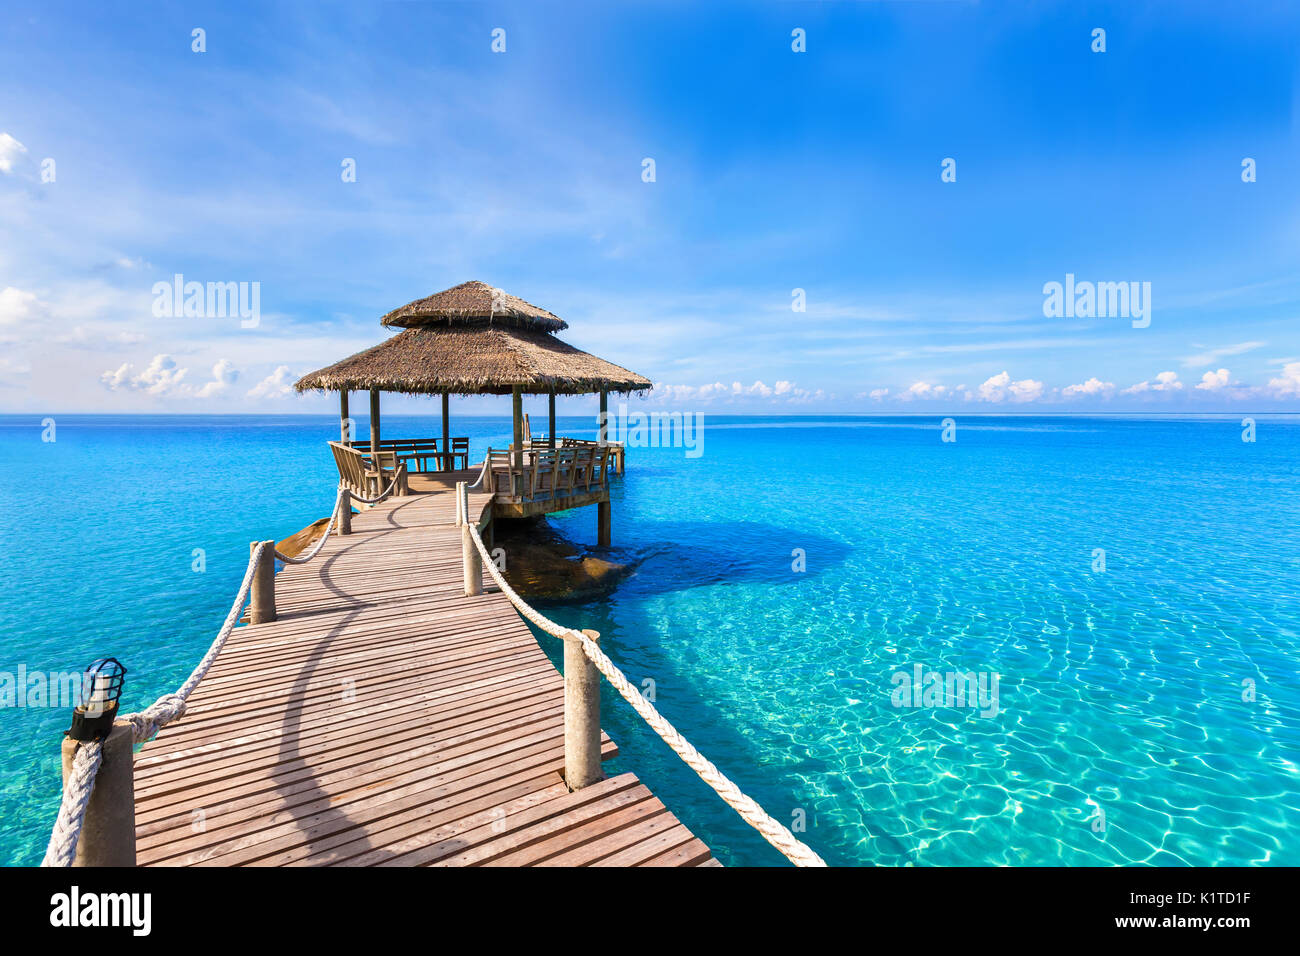 Tropical Island Beach Ambience Sound: Maldives Turquoise Water Wooden Jetty Stock Photos